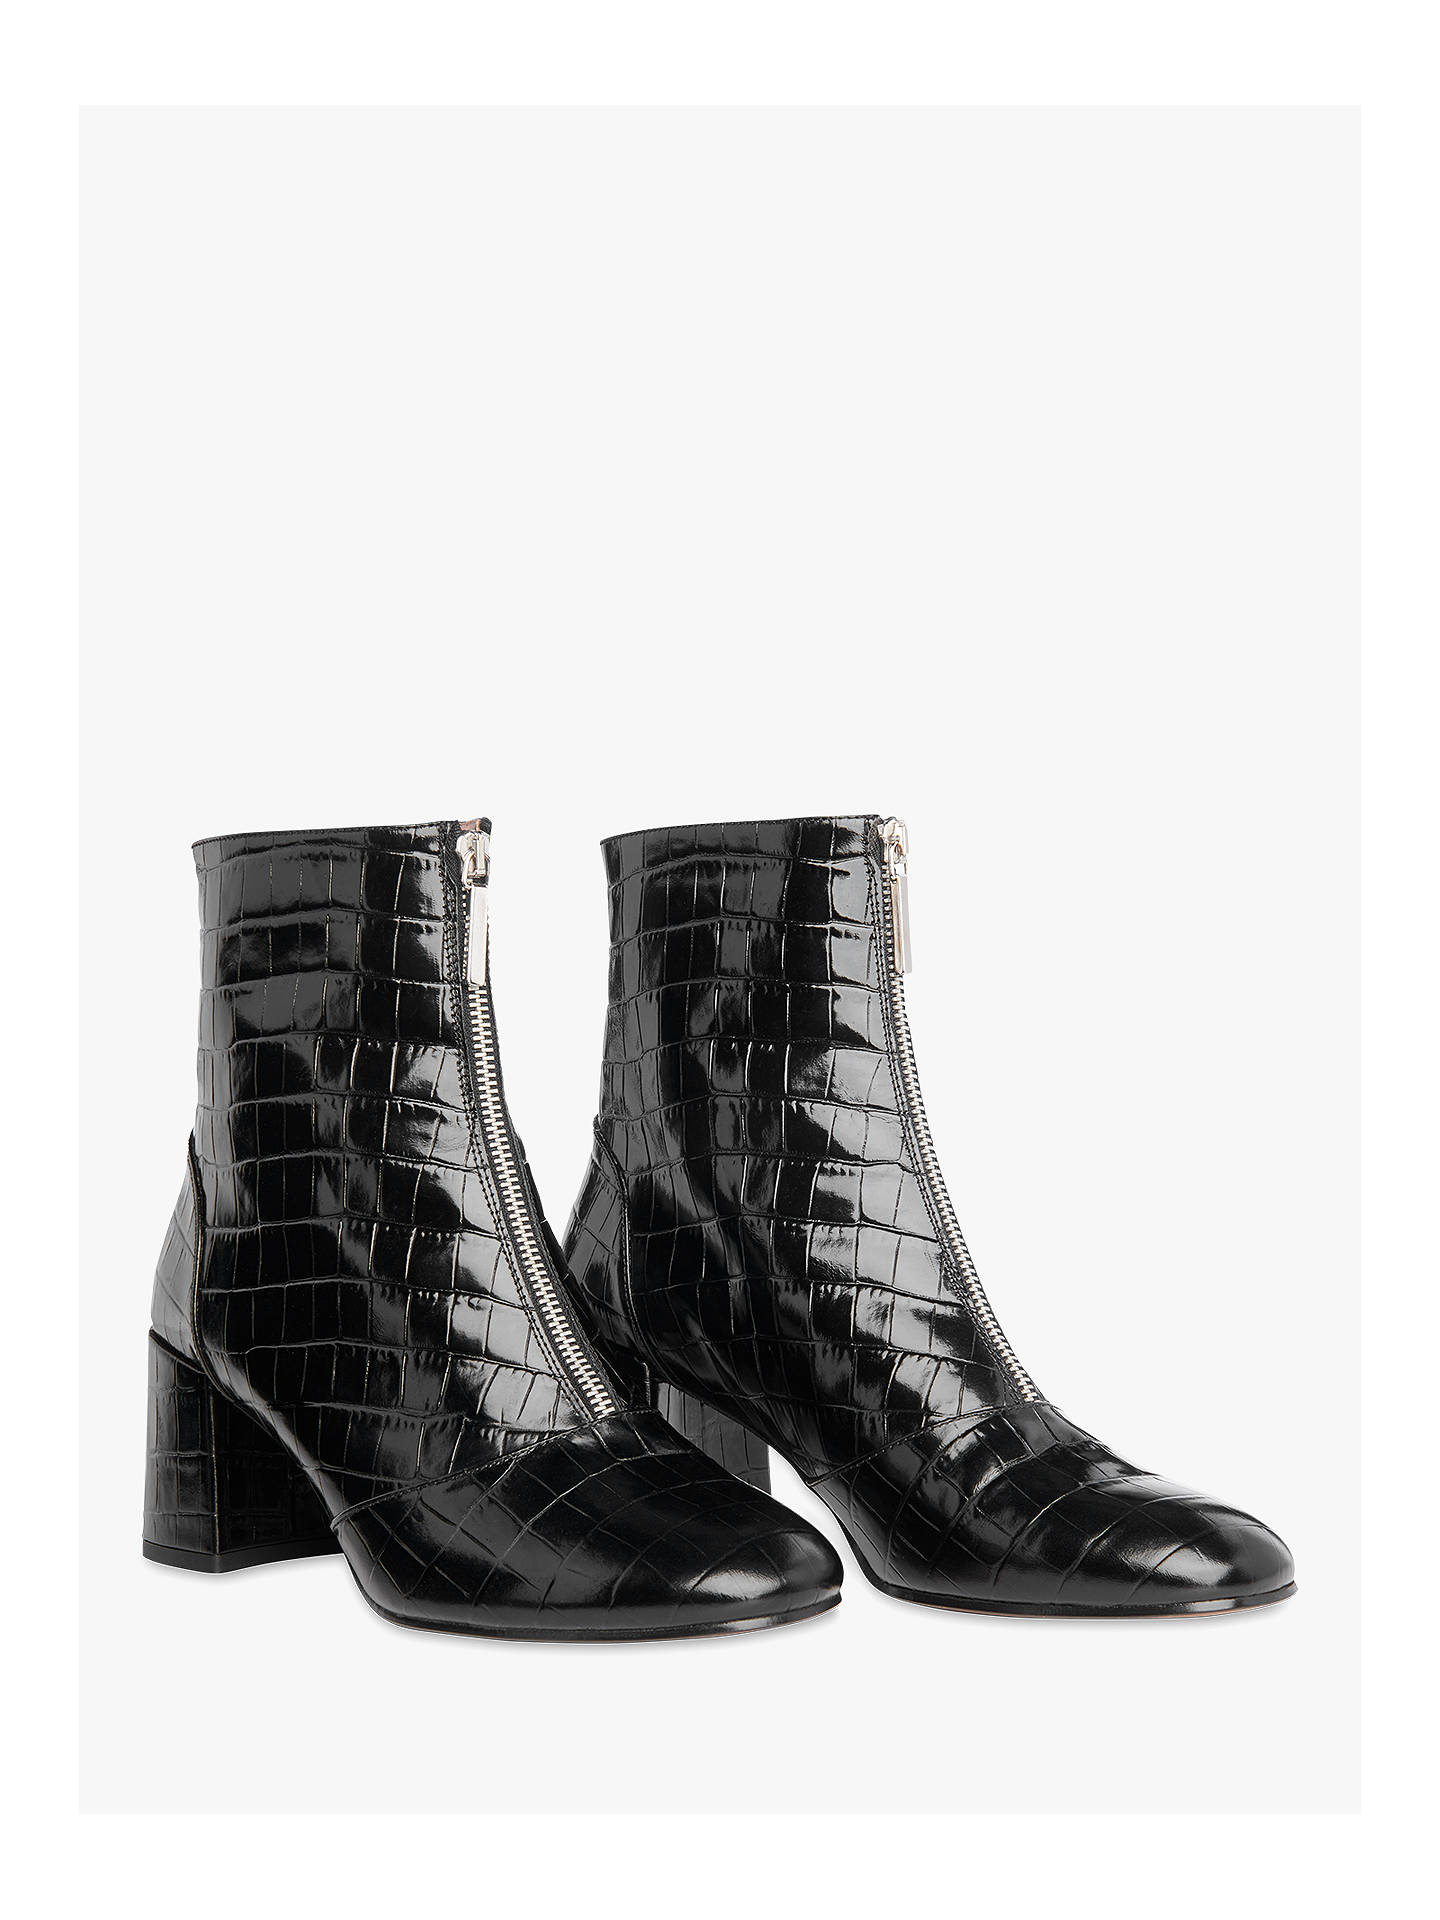 089716f23b3 ... Buy Whistles Rowan Croc Zip Front Ankle Boots, Black Leather, 3 Online  at johnlewis ...